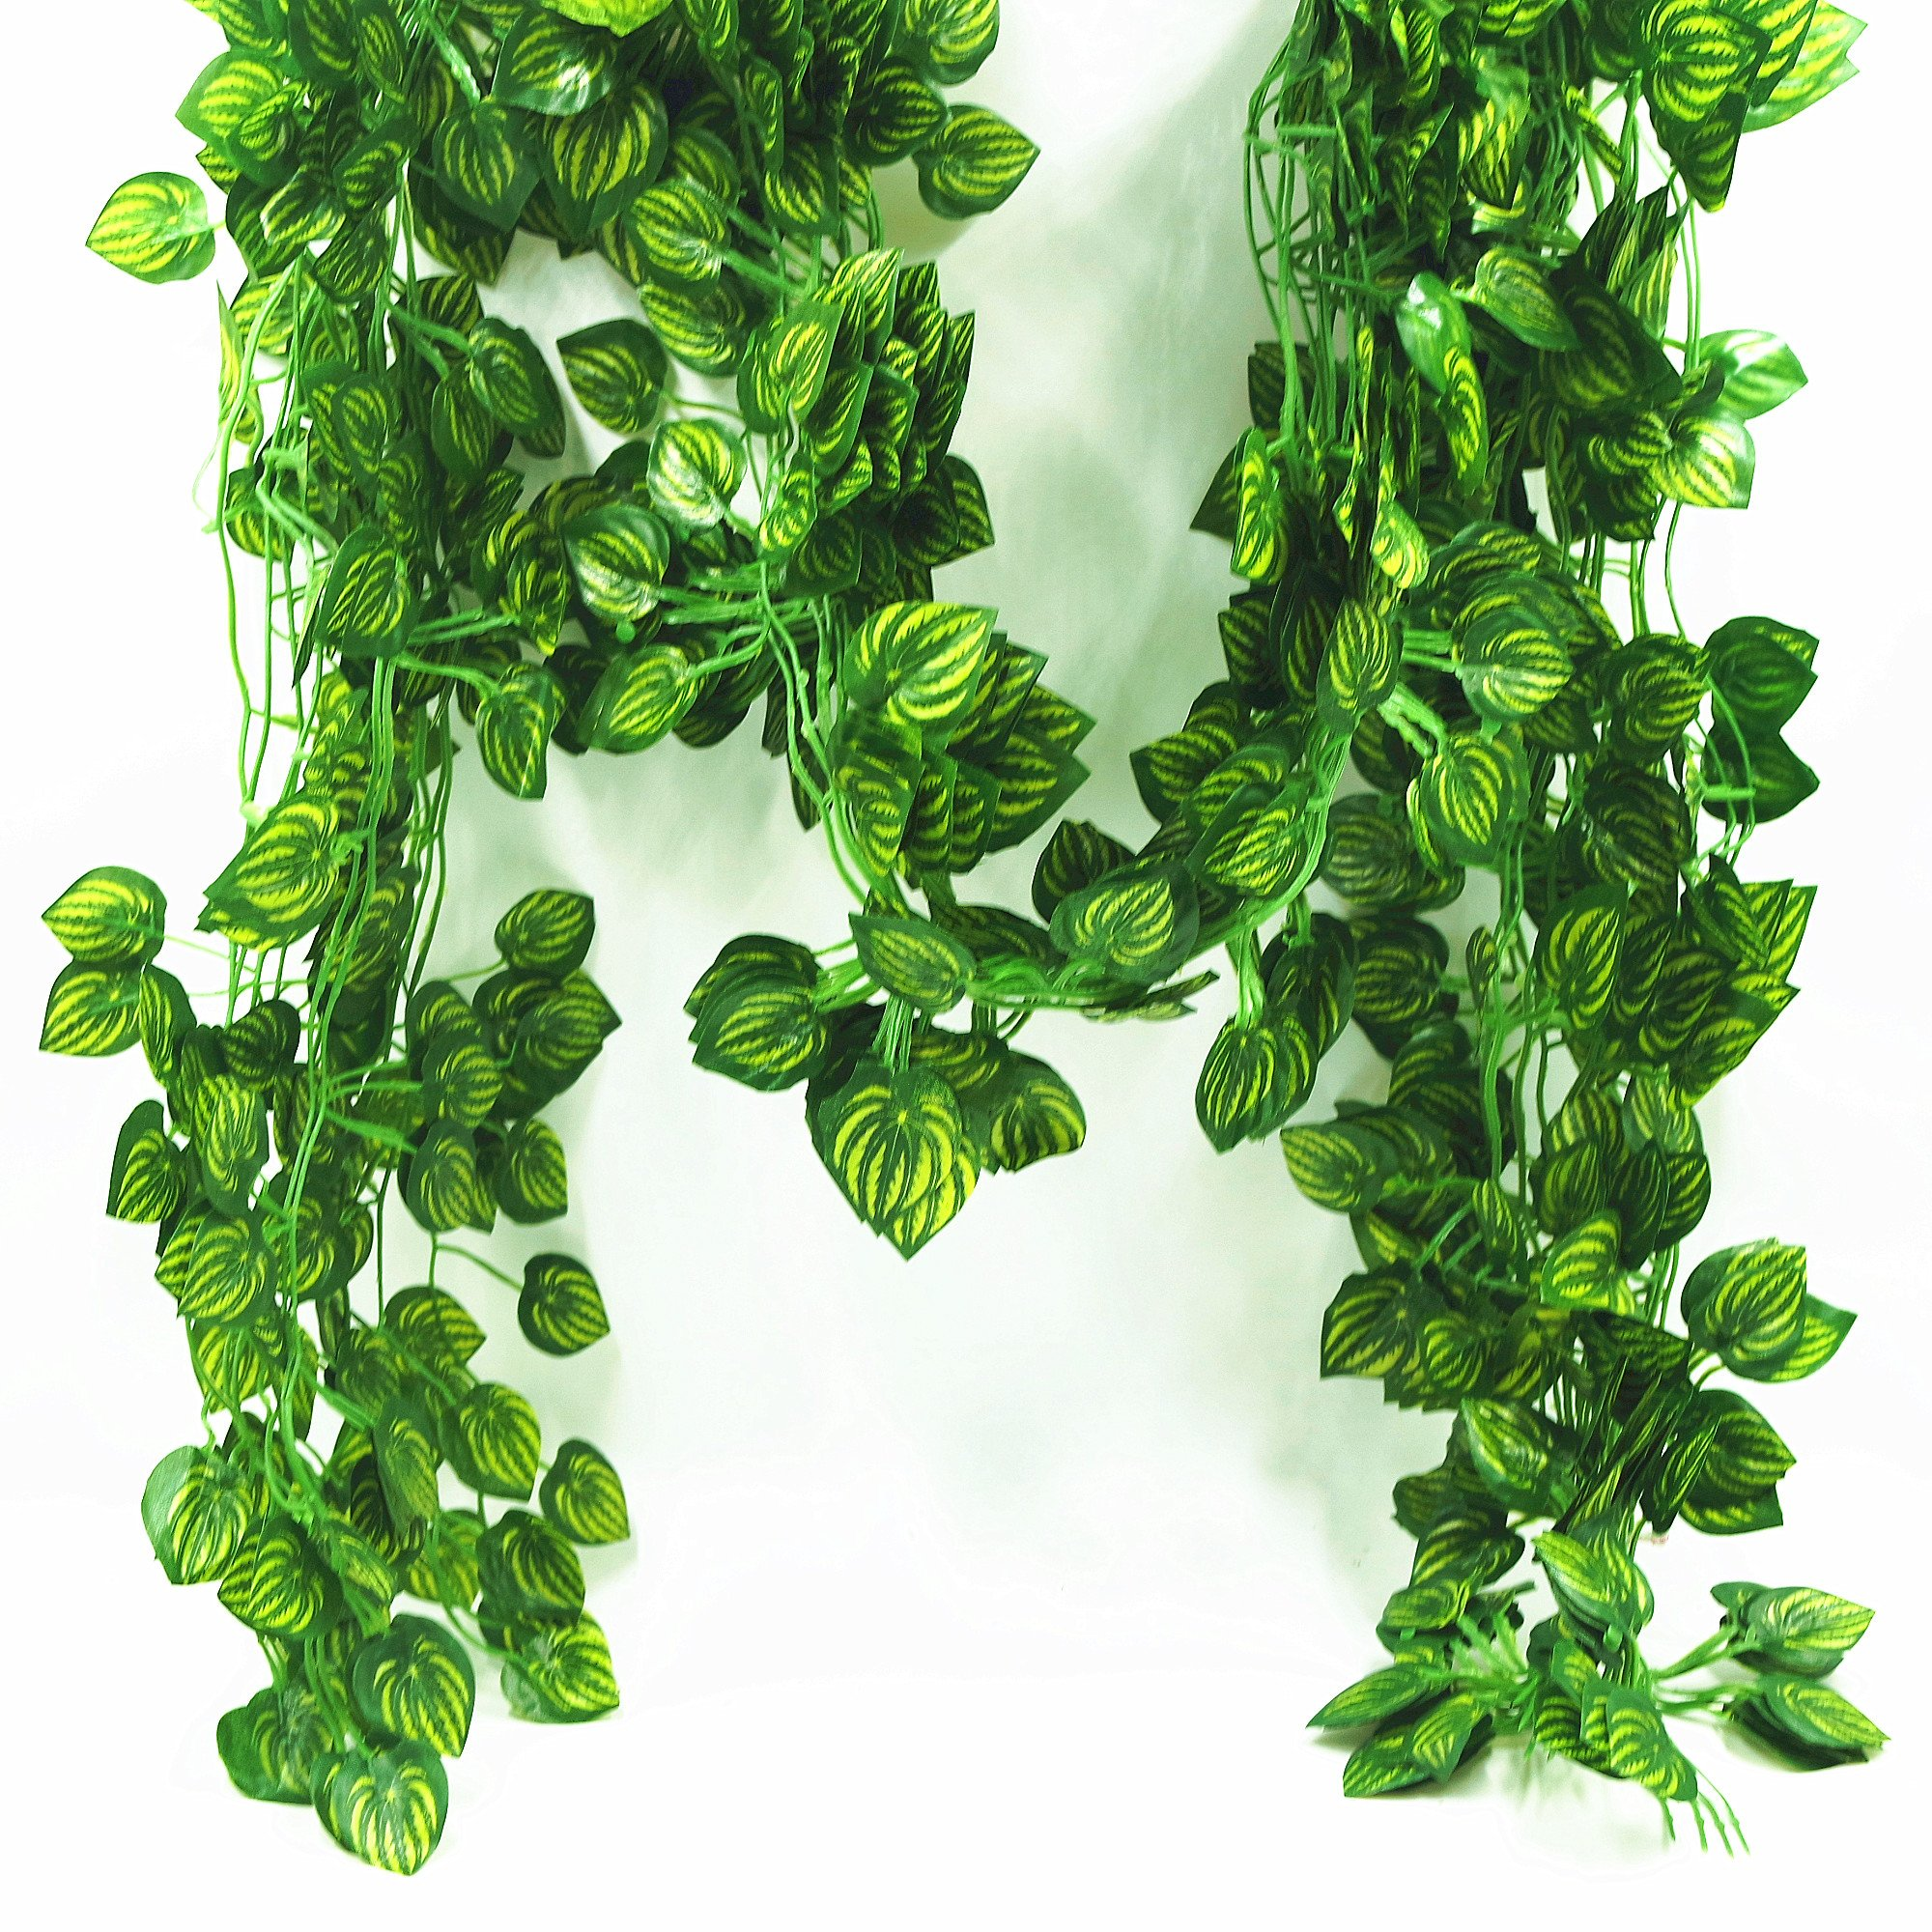 YHuaM 80 Leaves Artificial Ivy Plant Vines Decorative Vines Garden Vines Hotels,Offices and Home Cover Decor 12 pcs Artificial Hanging Plants Silk Green Leaf Garlands (Watermelon leaves)